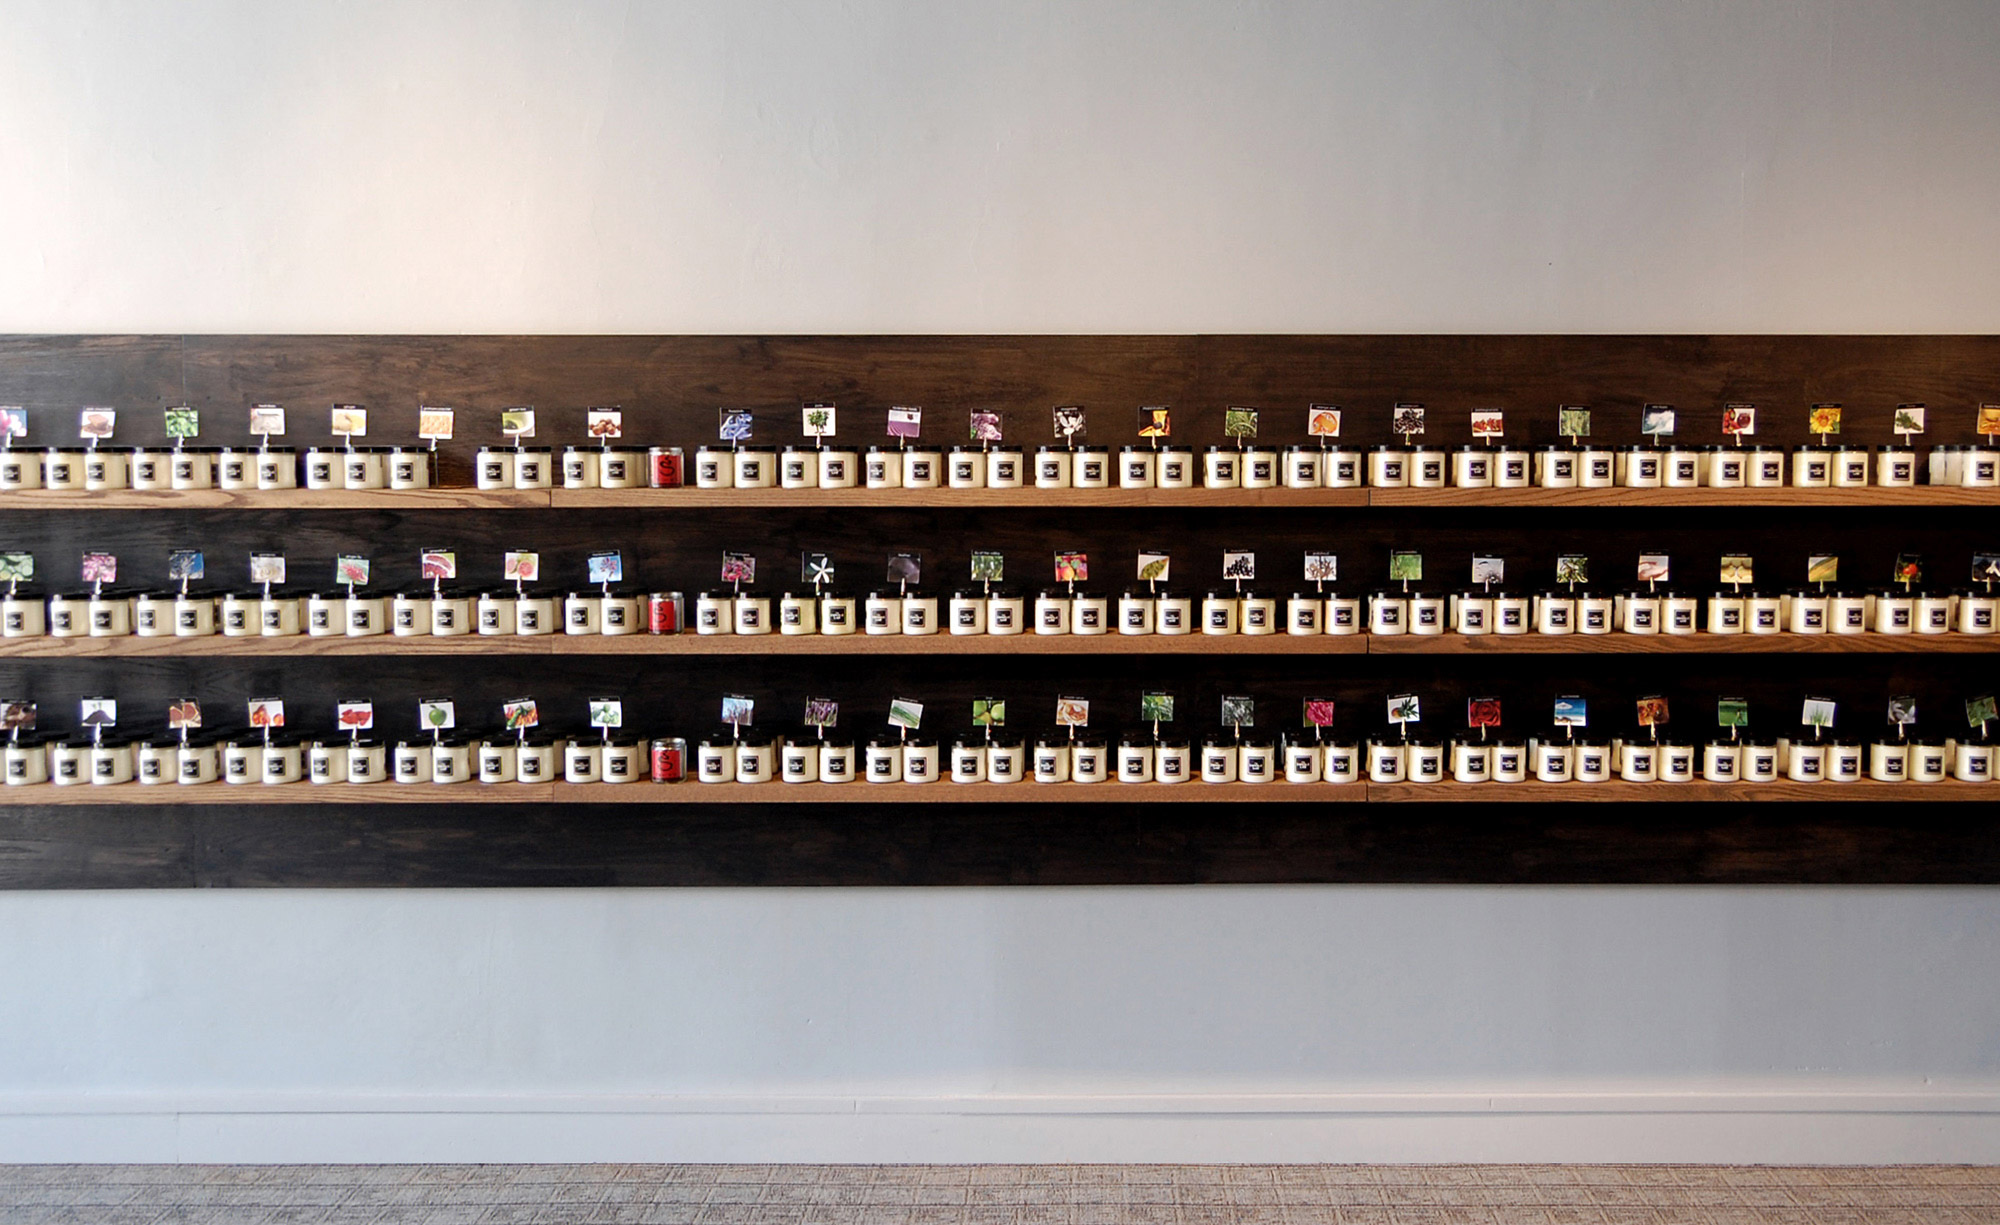 Tim and Eliza challenged us to think in different ways about our entire concept, and the result has far surpassed our expectations. Our store environment finally feels polished and flows logically, and we owe that all to Tim Lai ArchitecT.   Steve Weaver, owner of The Candle Lab